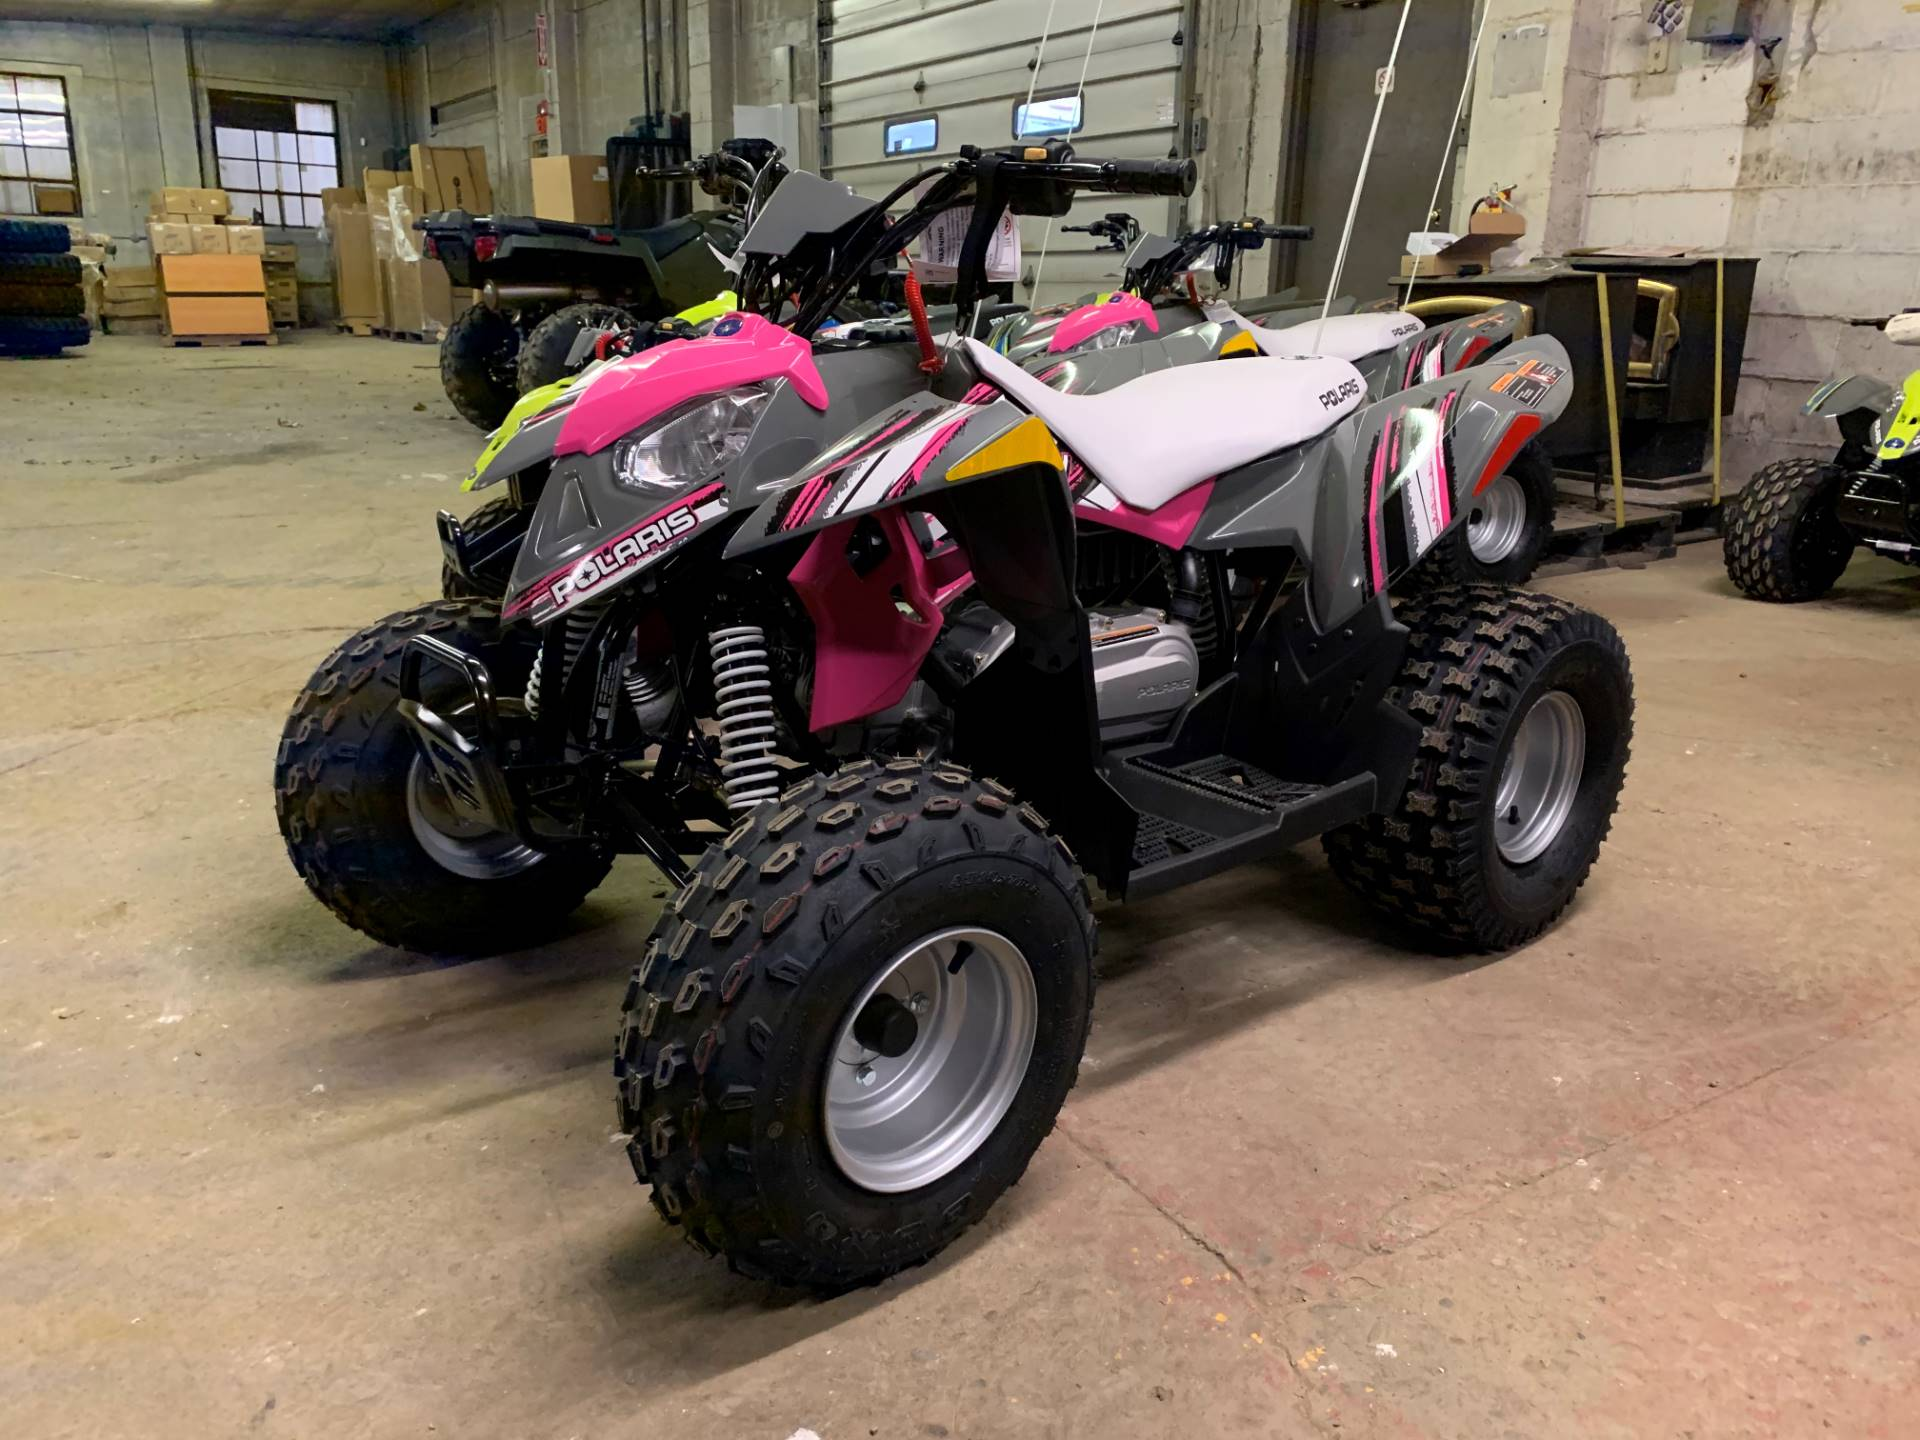 2020 Polaris Outlaw 110 in Chicora, Pennsylvania - Photo 7